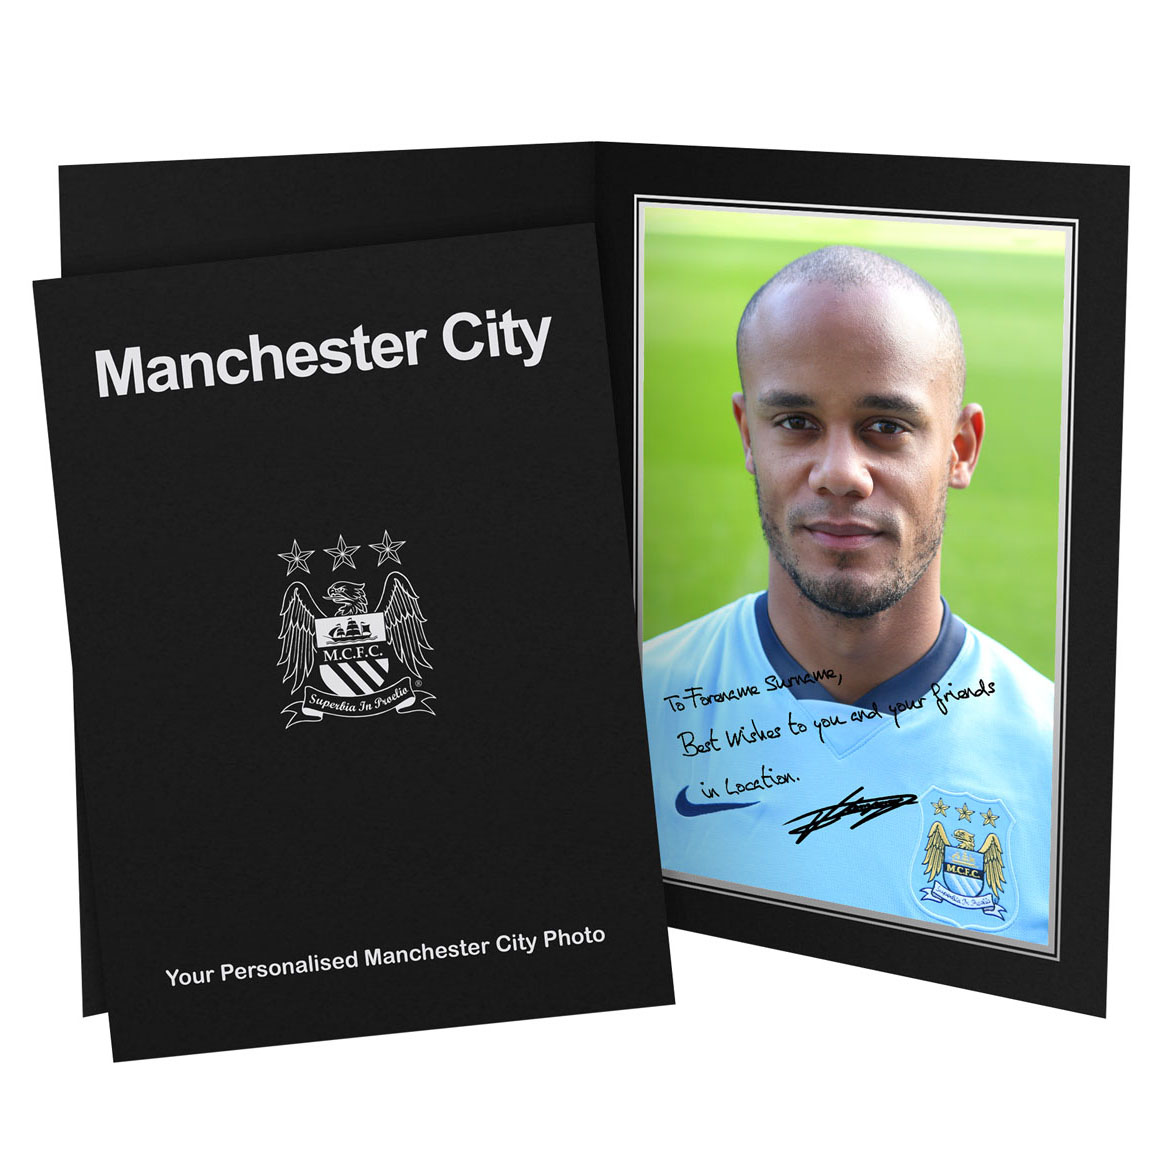 Manchester City Personalised Signature Photo in Presentation Folder - Kompany